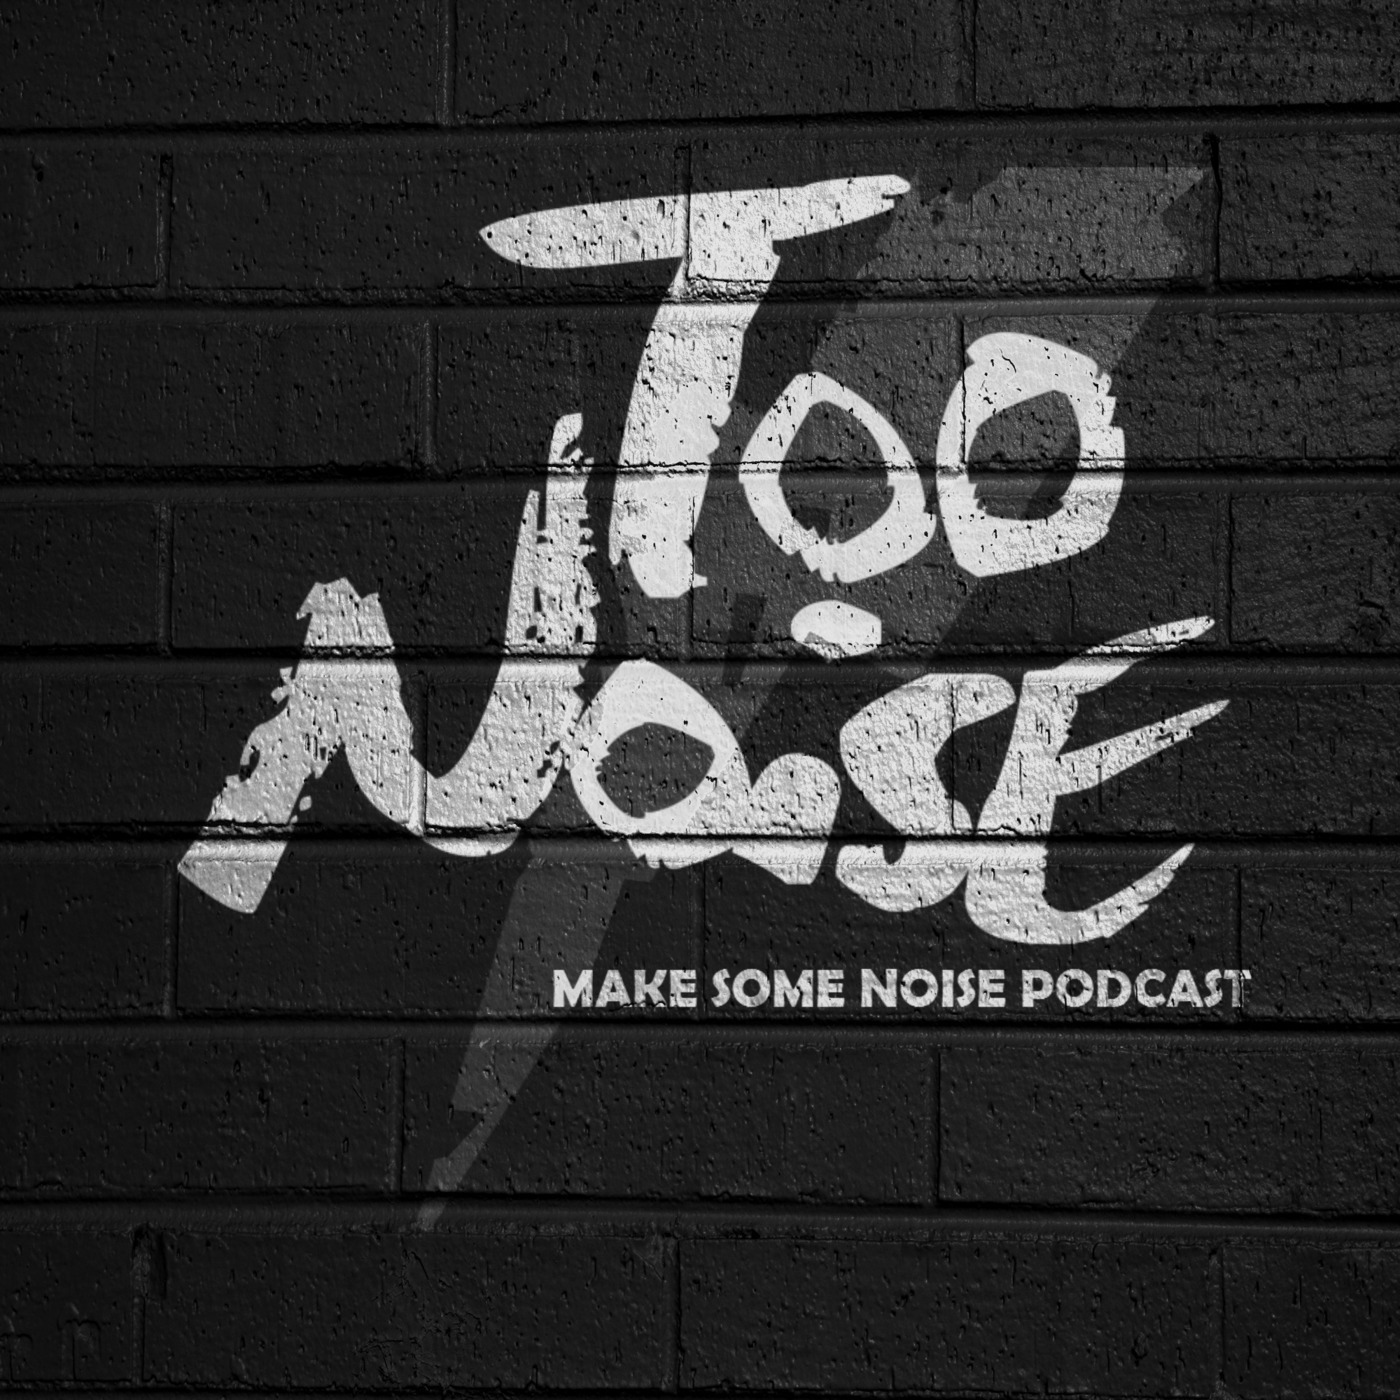 Too Noise's Make Some Noise Podcast